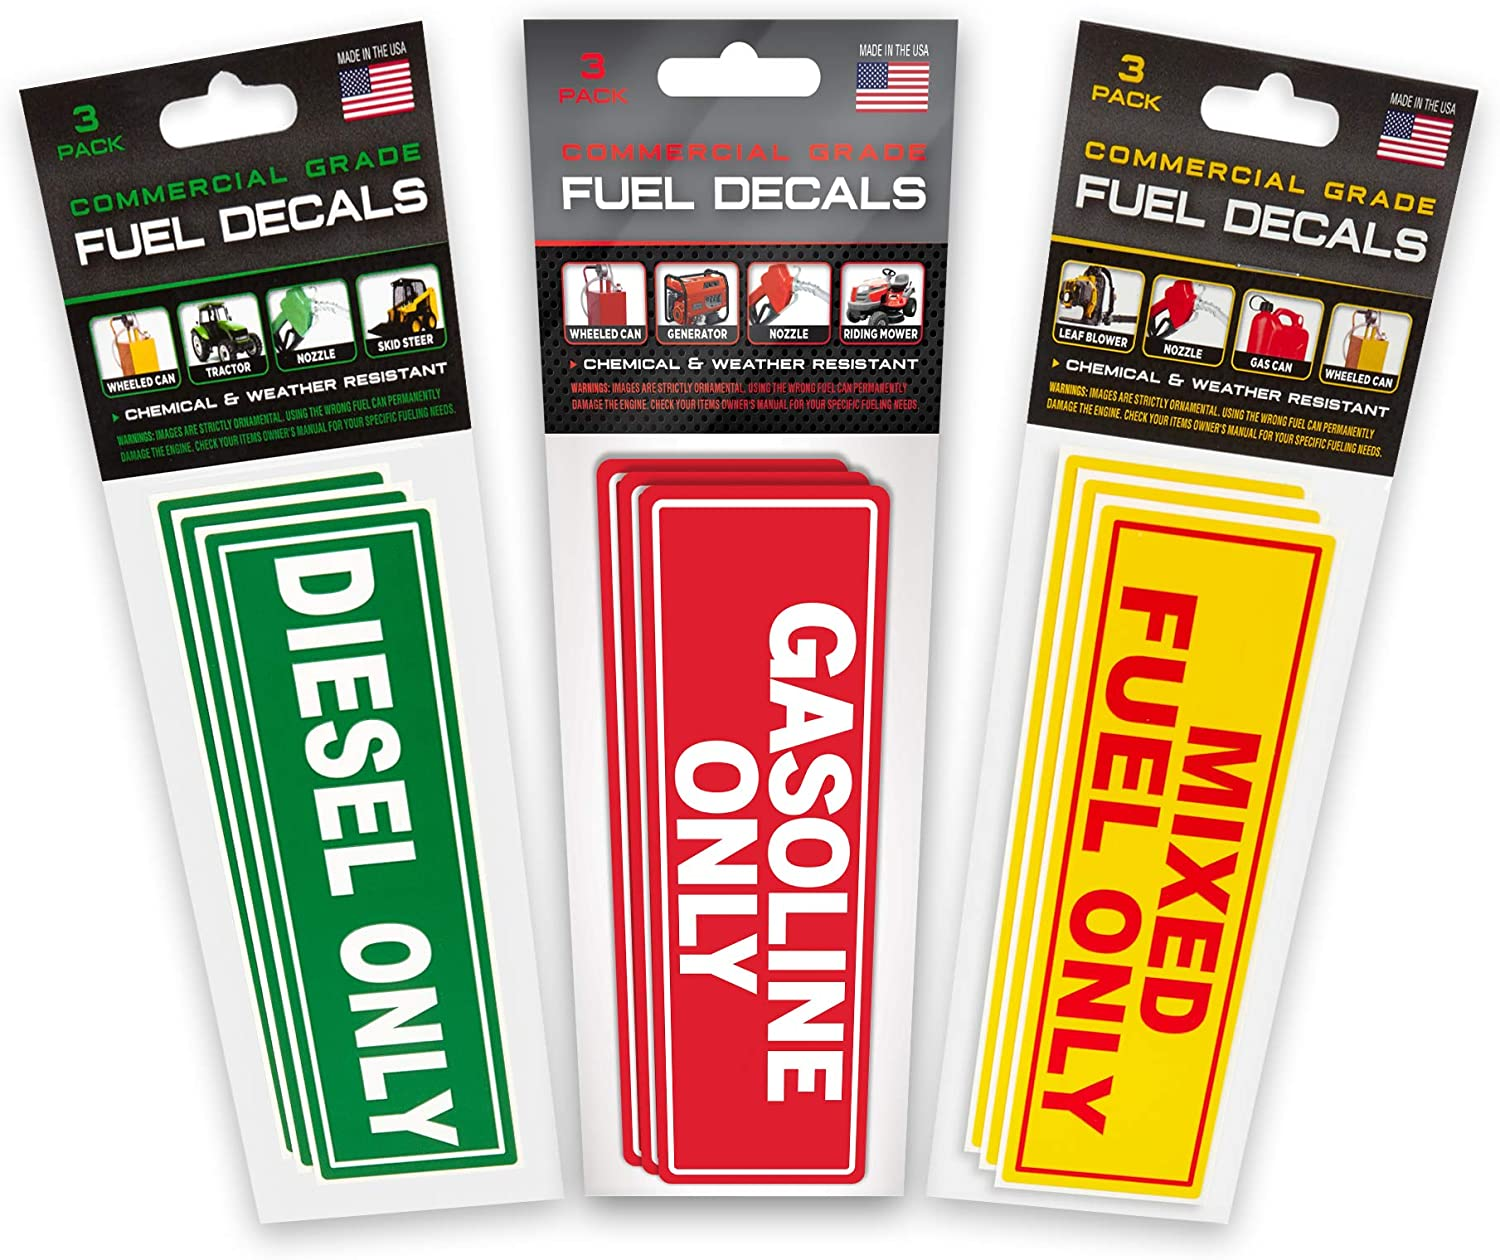 Weather Resistant 6x2 9 Stickers Total andGas Only Stickers 1 Pack of 3 Stickers Each Commercial Grade Decals Ultra Durable Diesel Only,Mixed Fuel Only